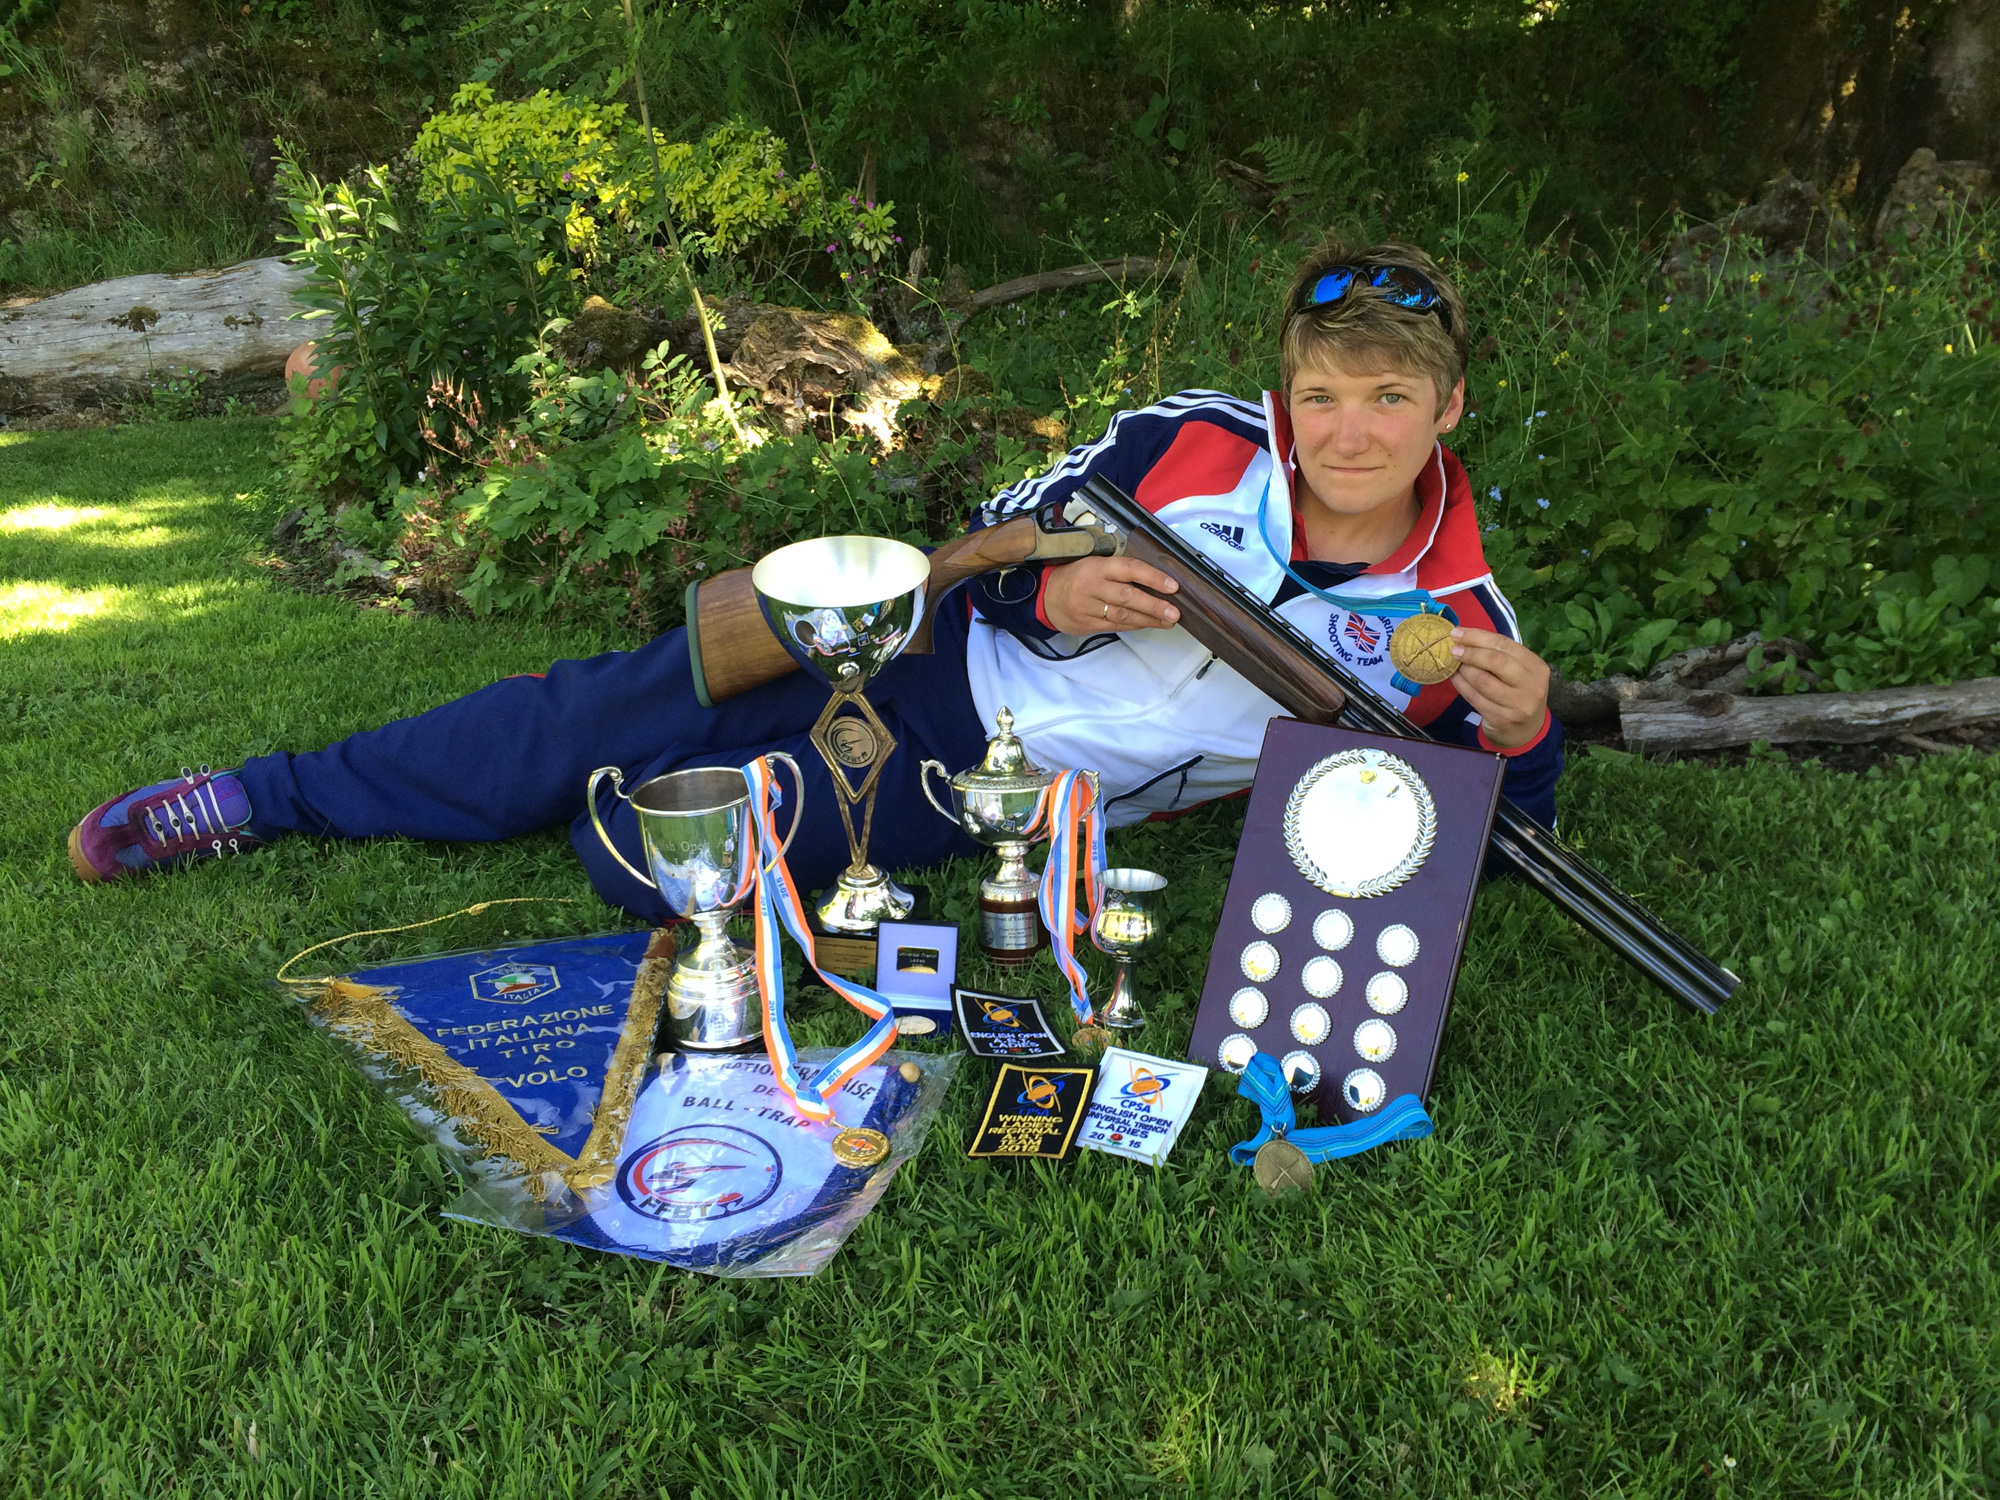 Me with my current Clay Shooting trophies and medals to date